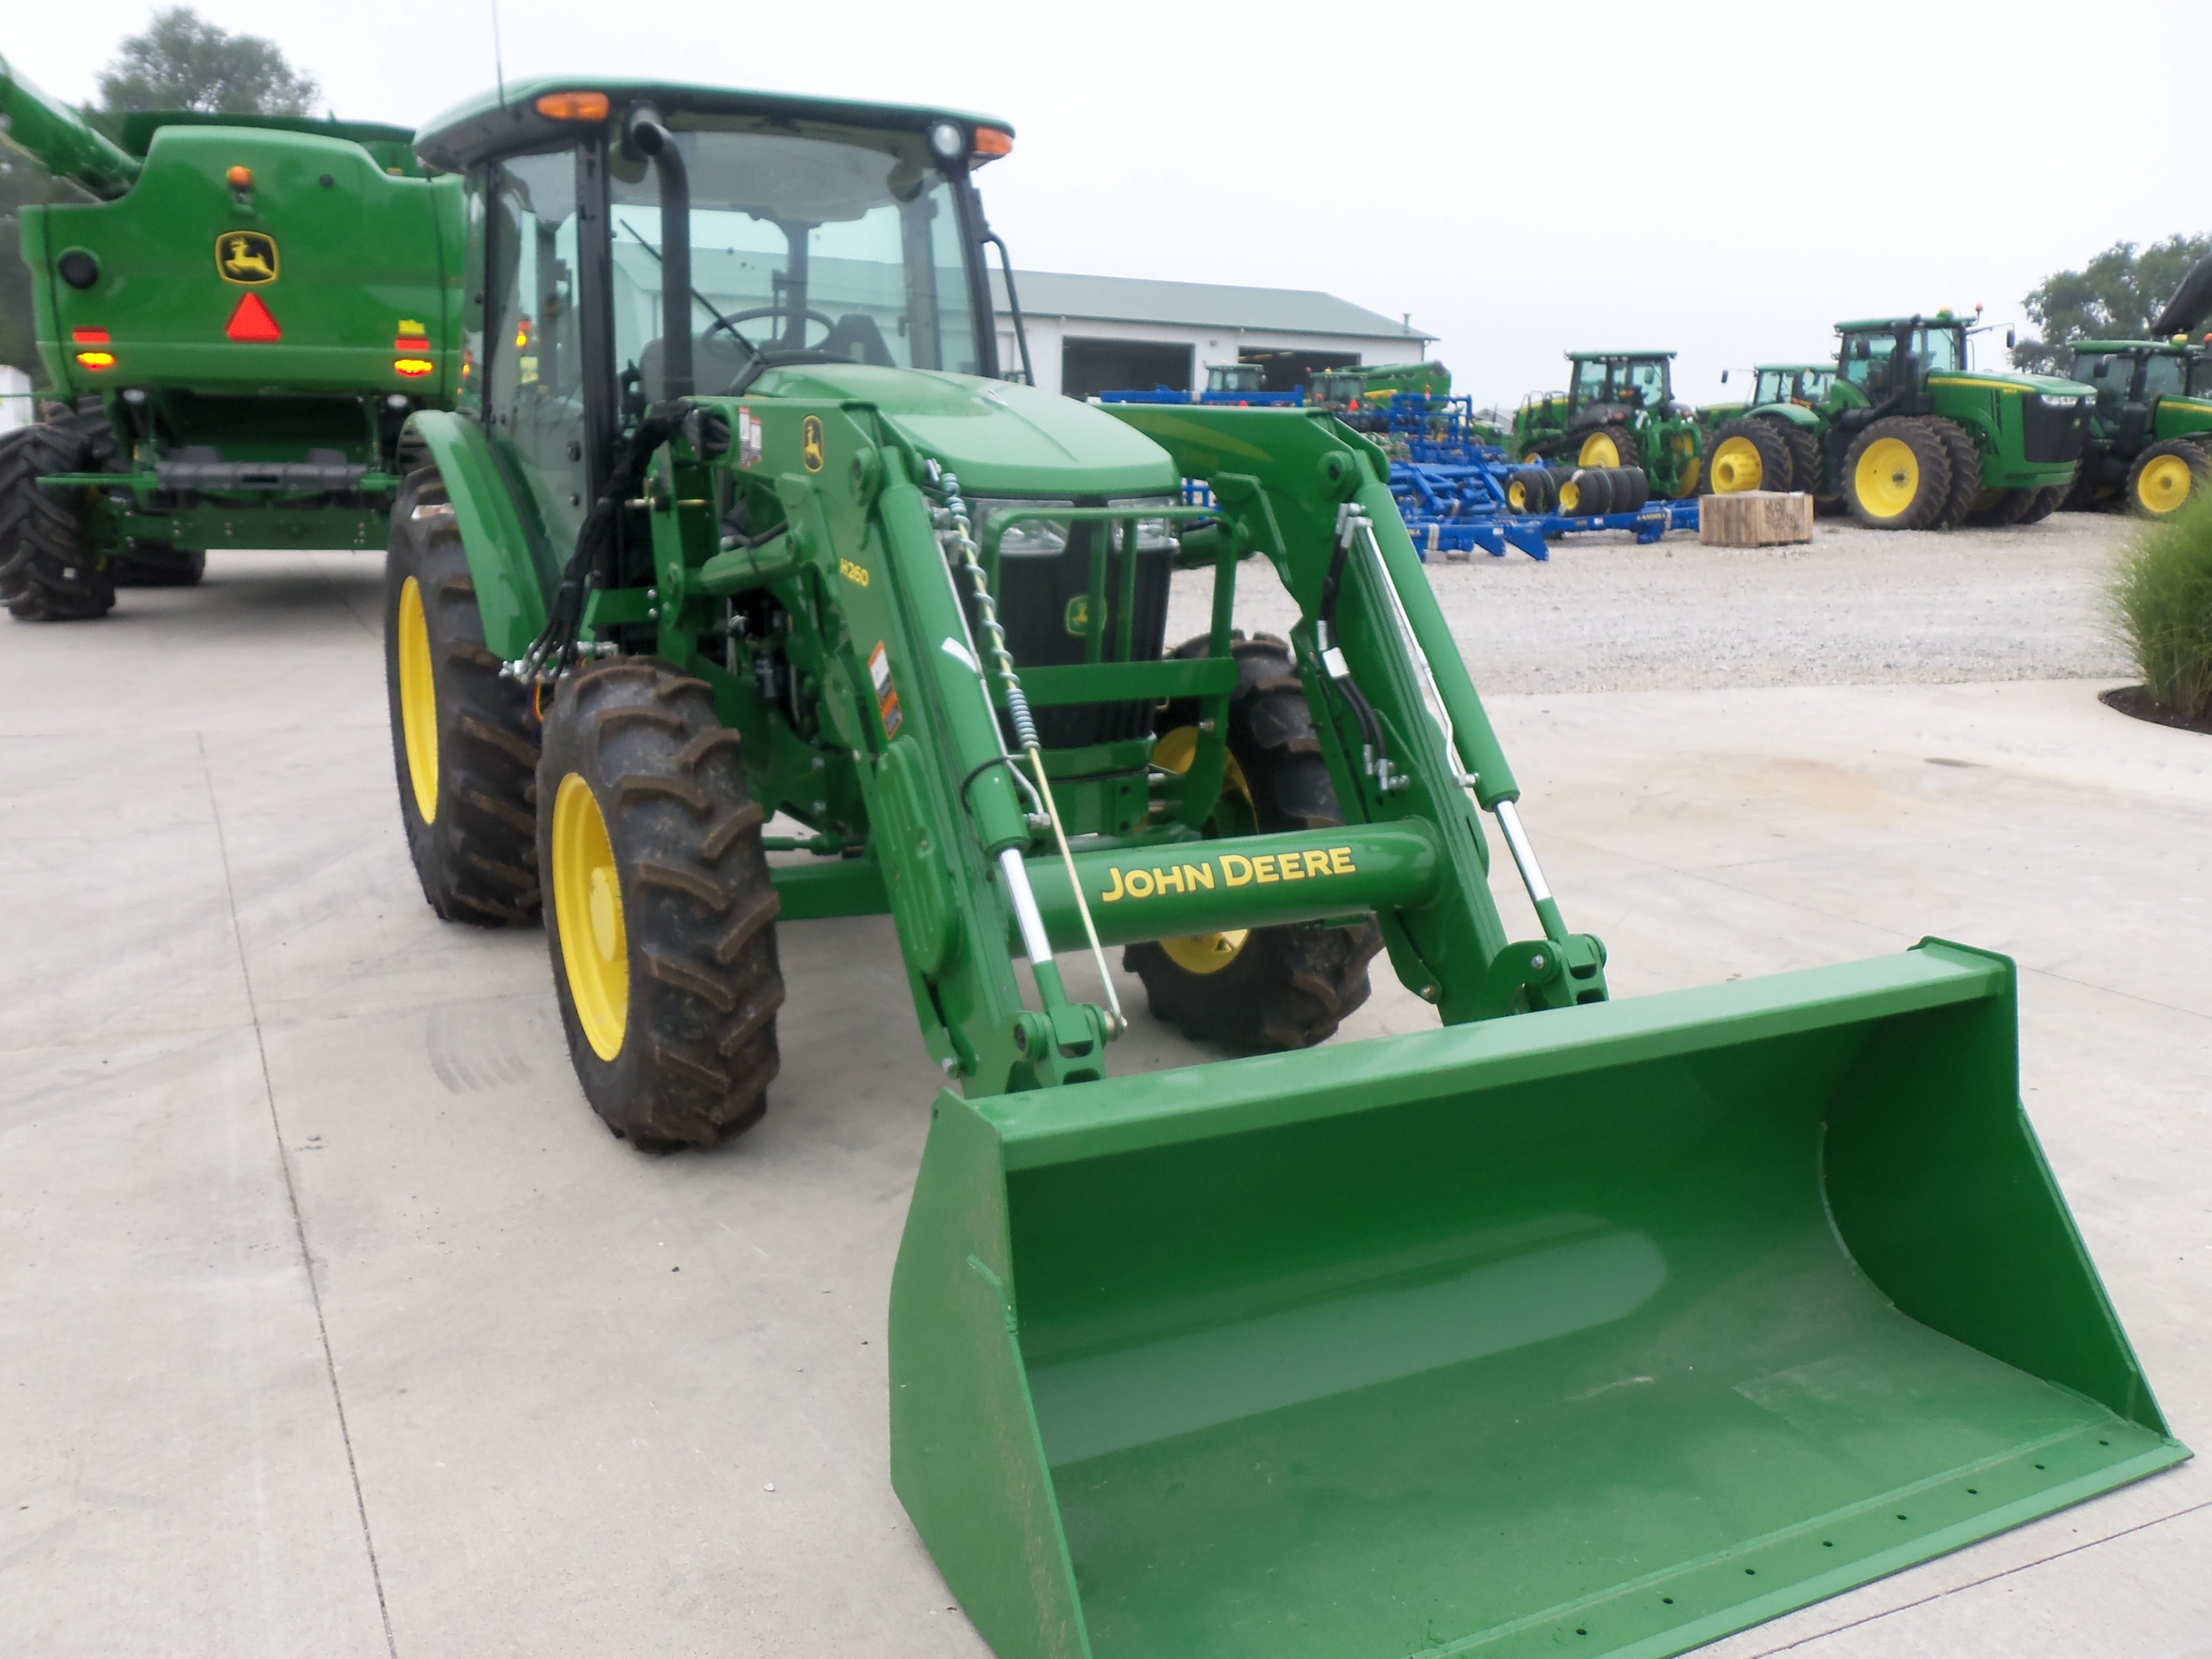 69hp John Deere 5083E with H260 loader | John Deere equipment | Pint ...